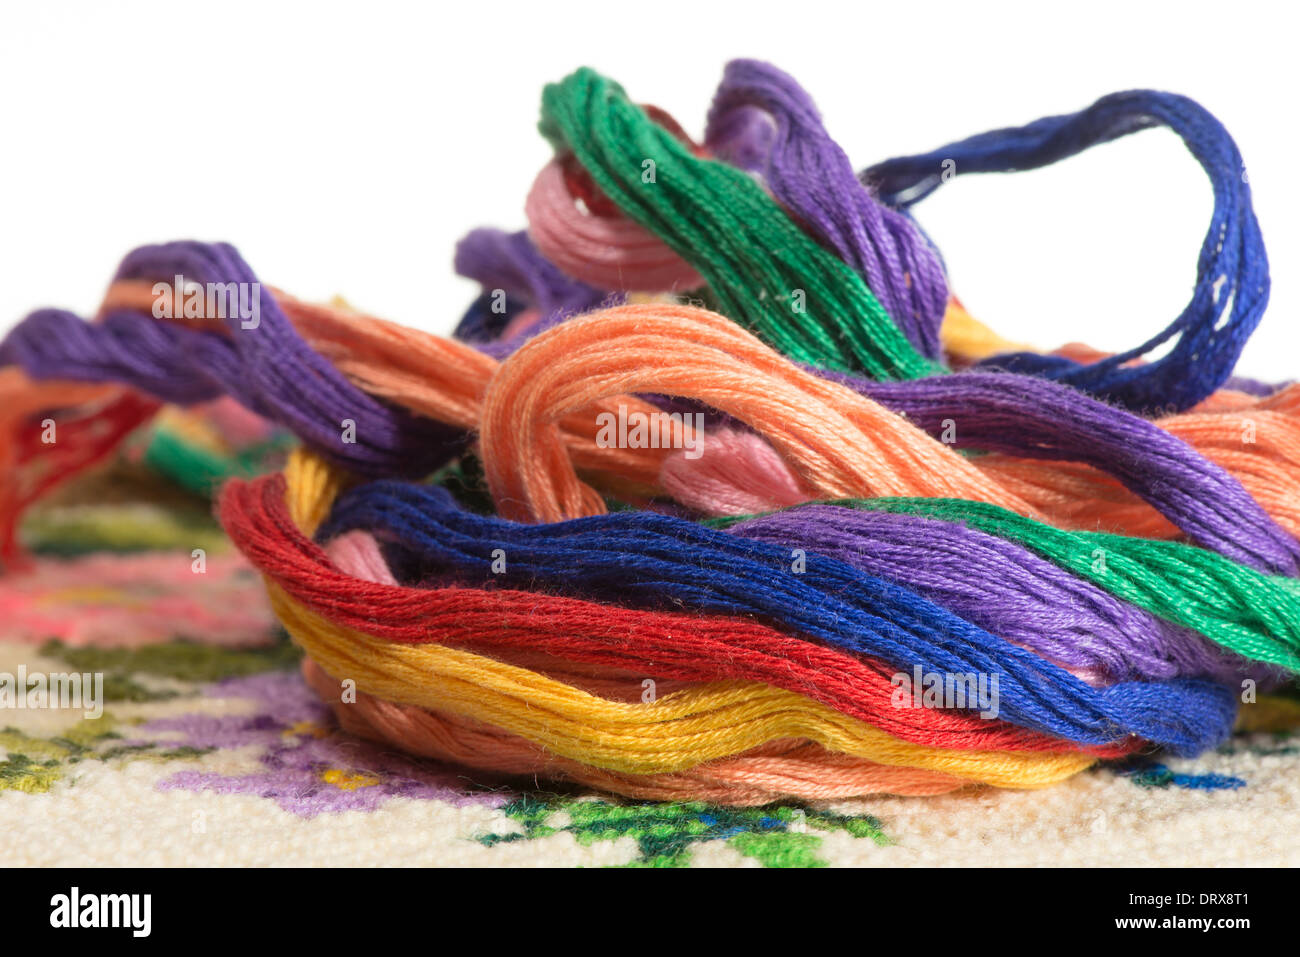 skeins of multicolored threads for embroidery - muline. on a white background - Stock Image